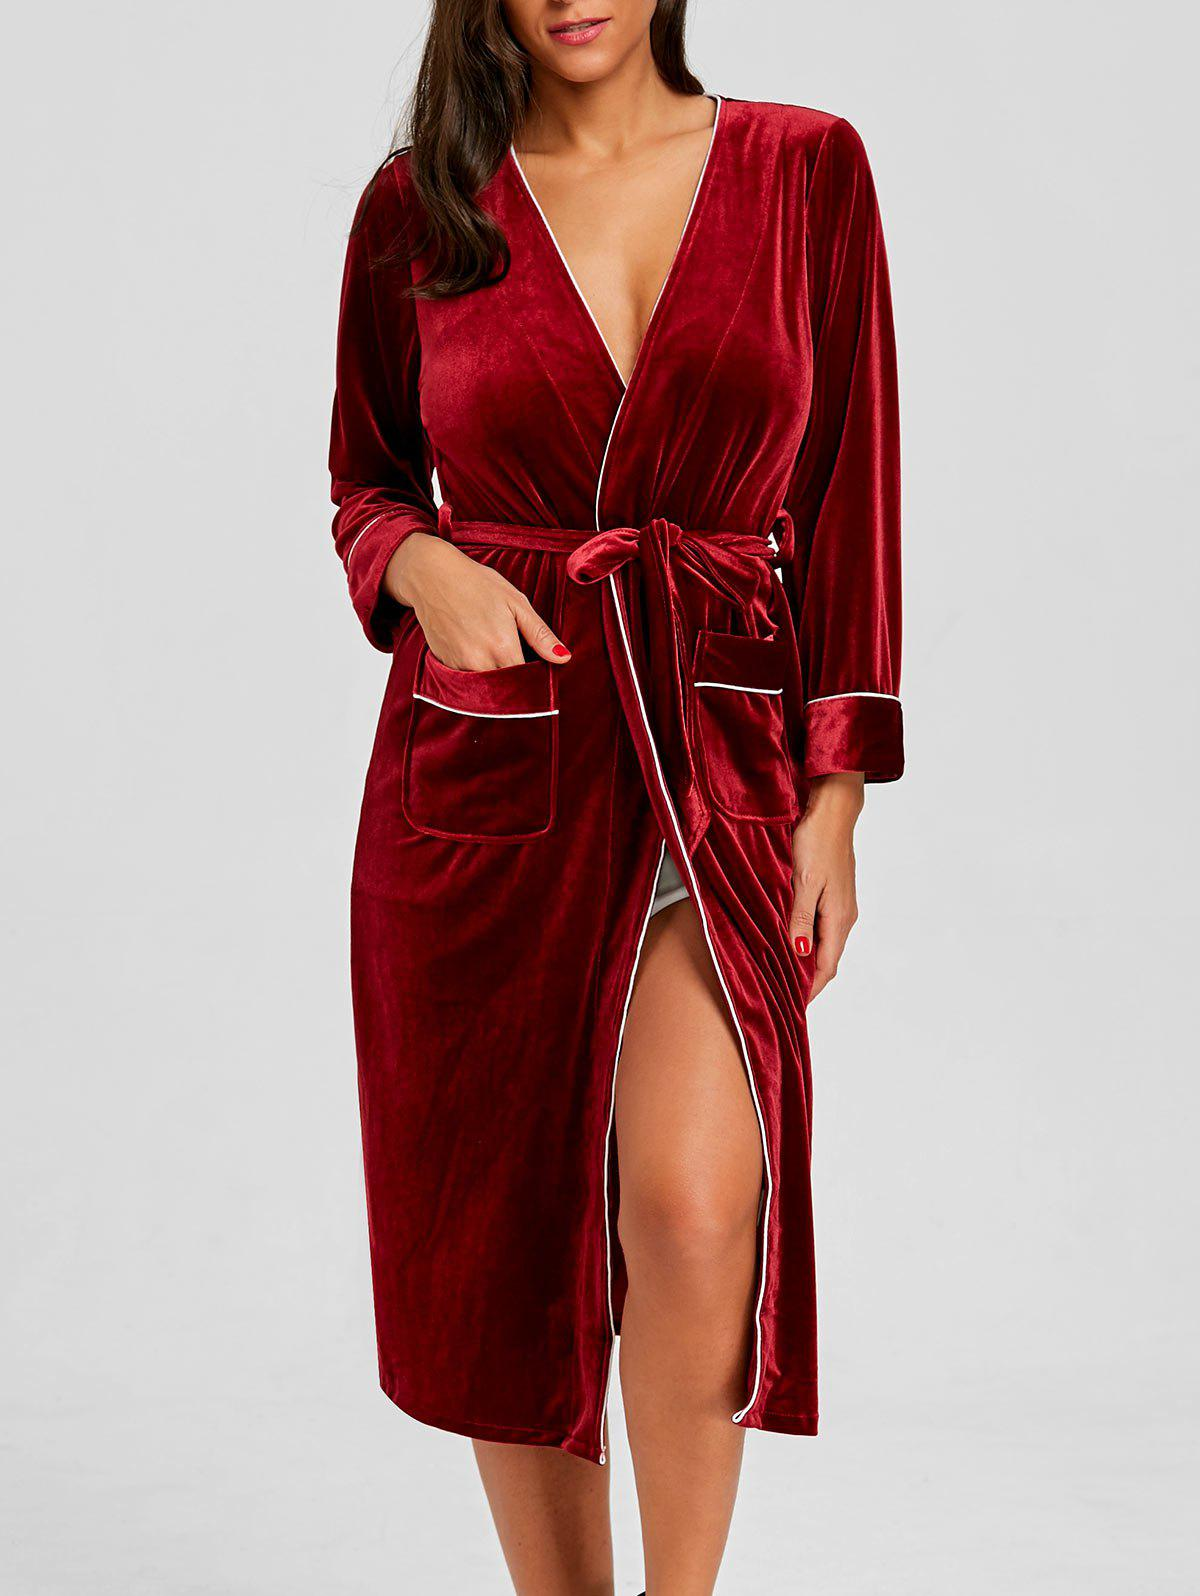 Discount Pockets Panel Velvet Sleeping Robe